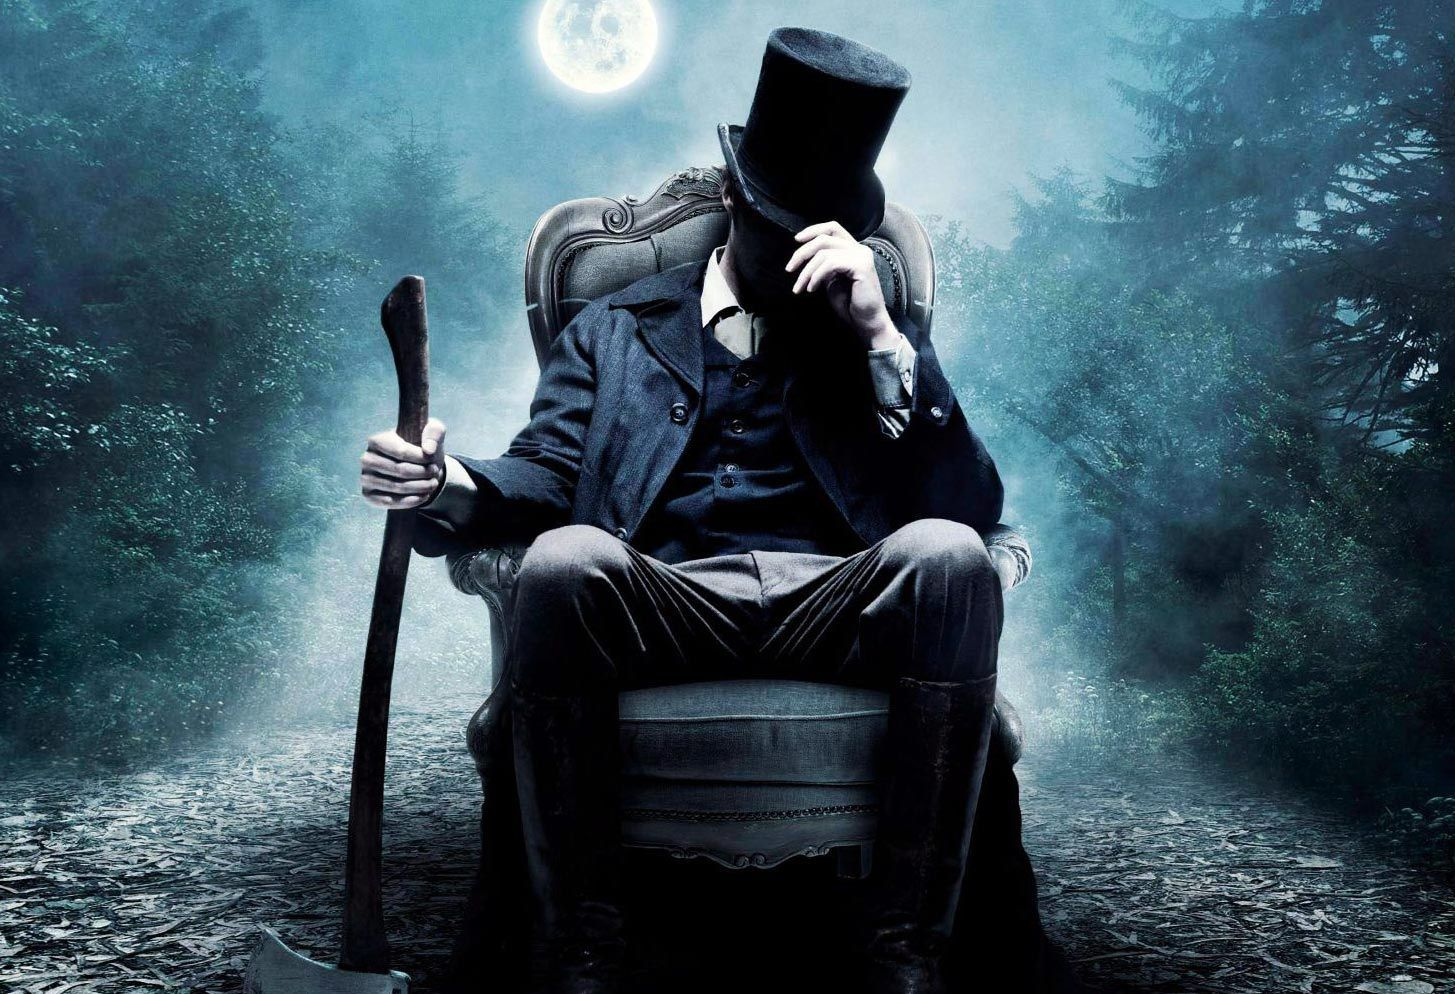 Hollywood Movies Hd Wallpapers 1021 Movie Hd Wallpapers Abraham Lincoln Vampire Iphone Wallpaper For Guys Lincoln Vampire Hunter